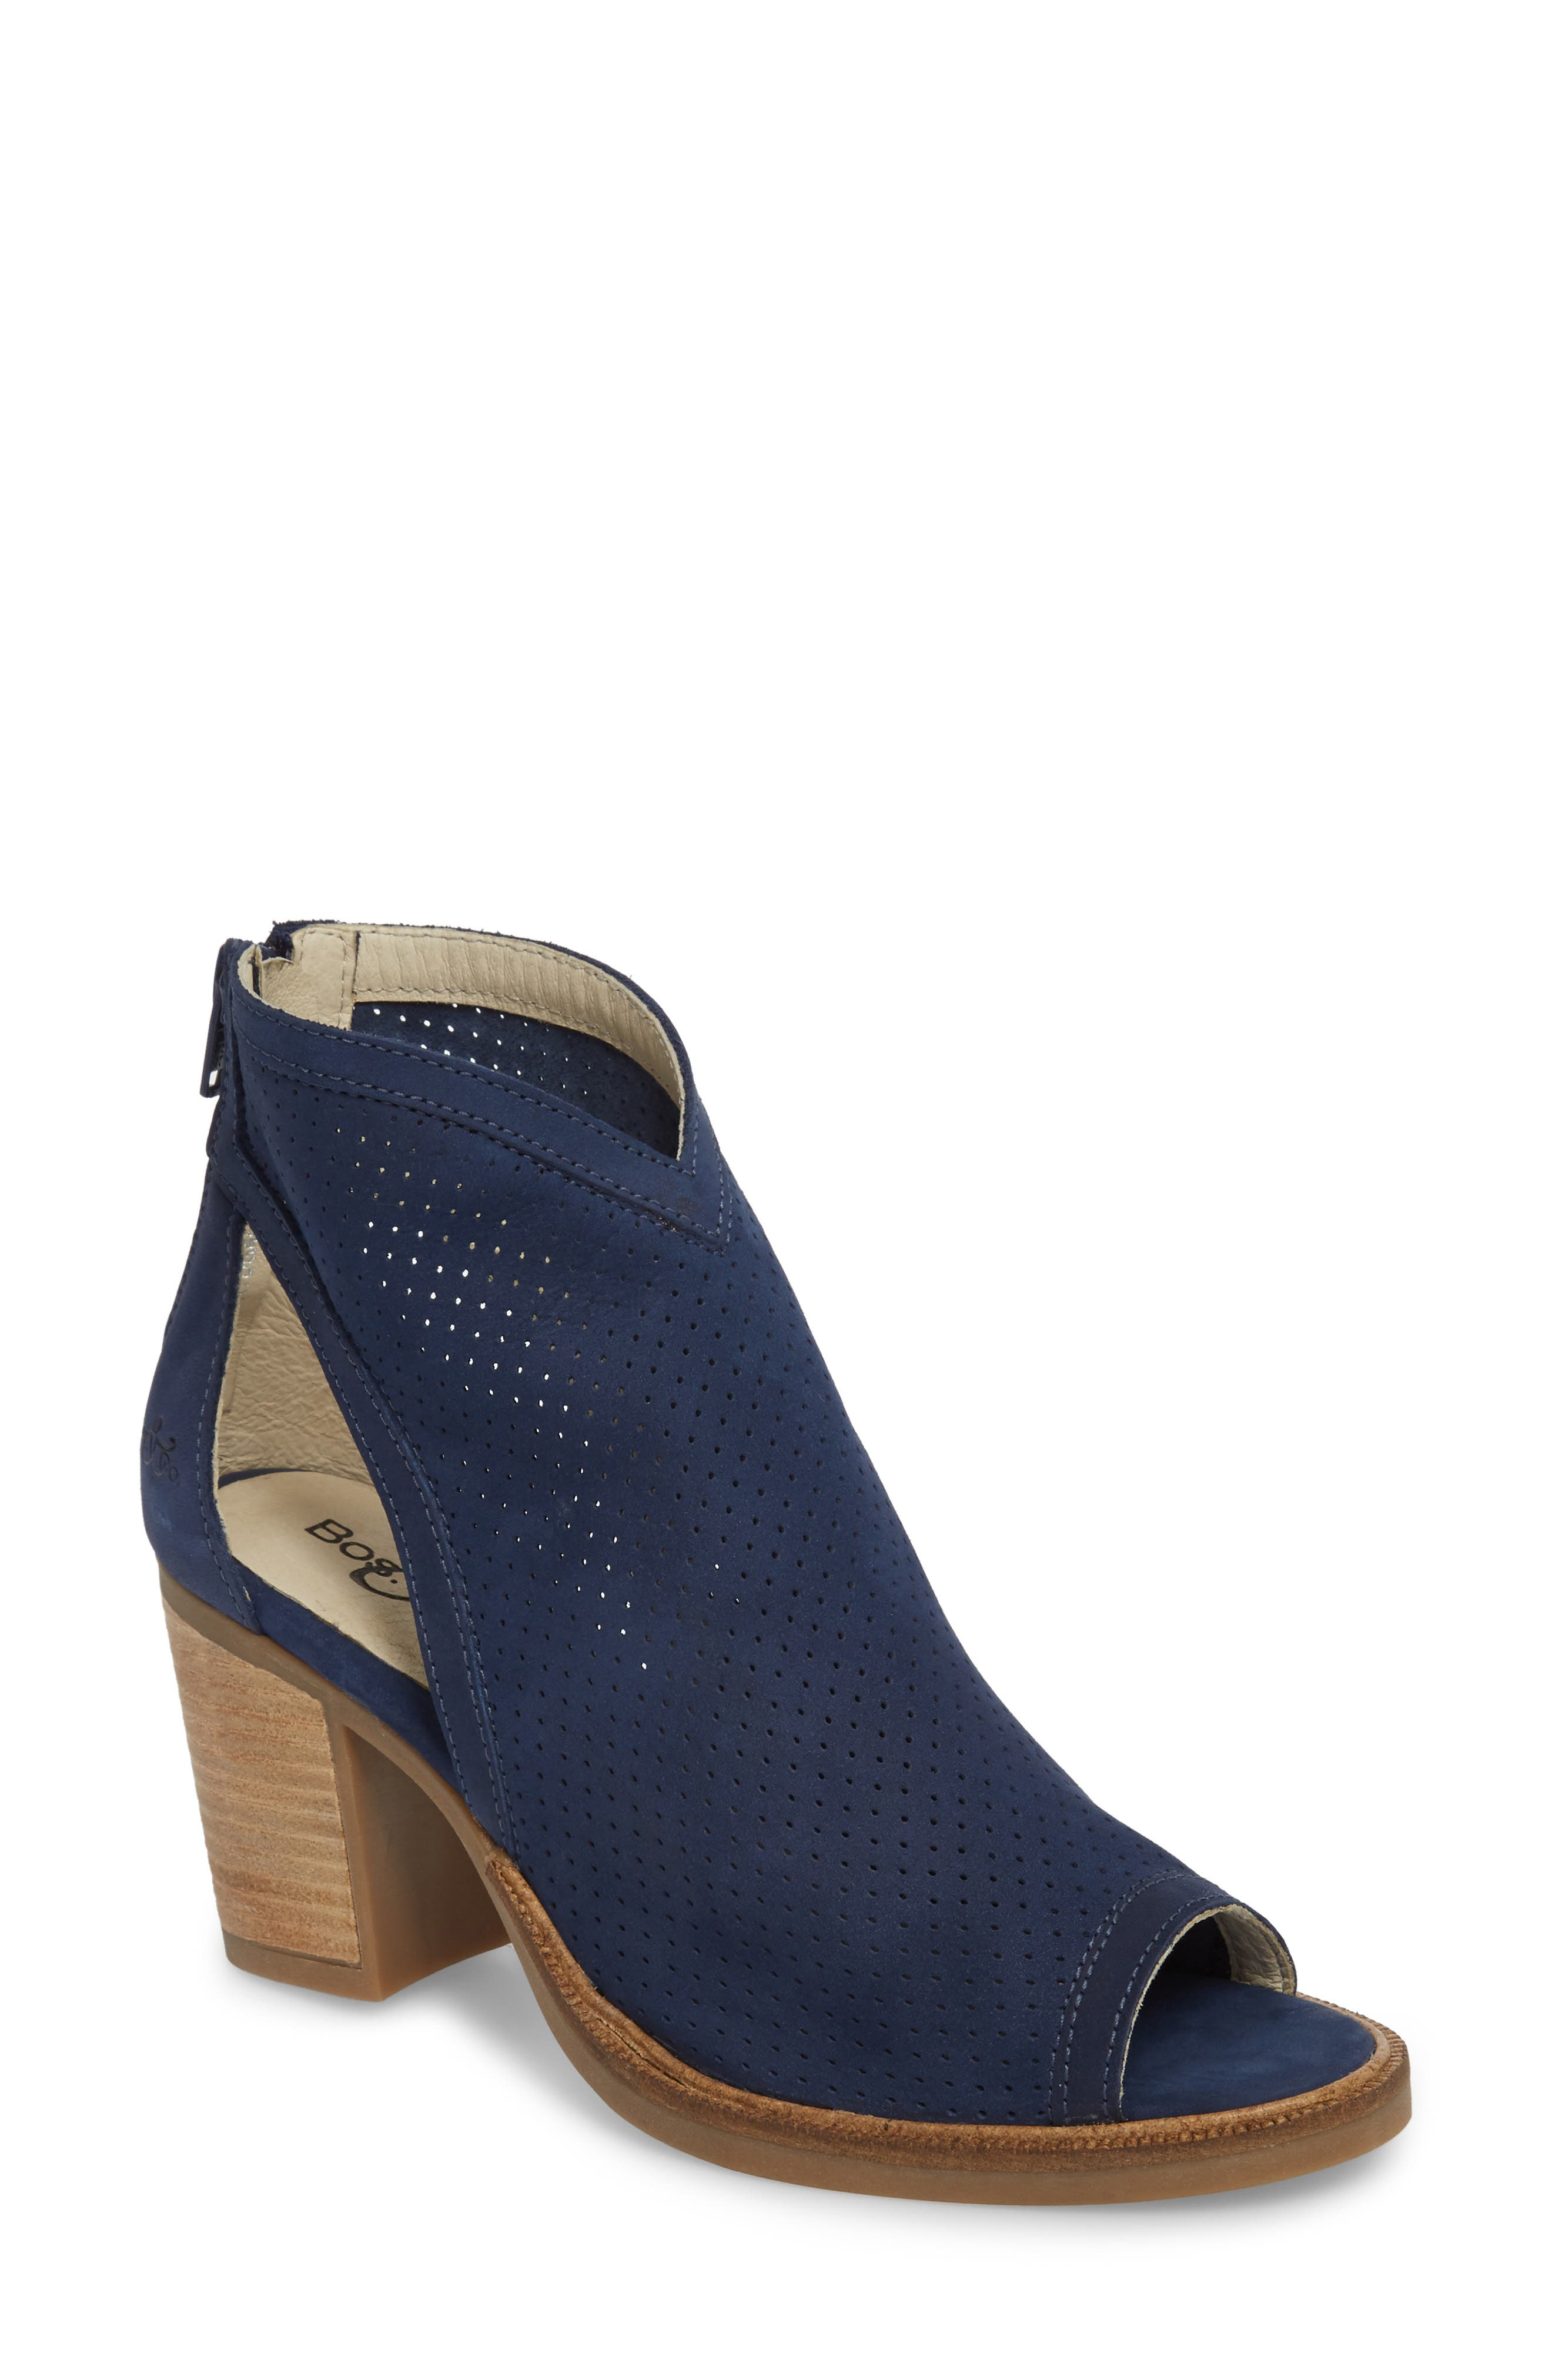 Bos. & Co. Banes Bootie, Blue